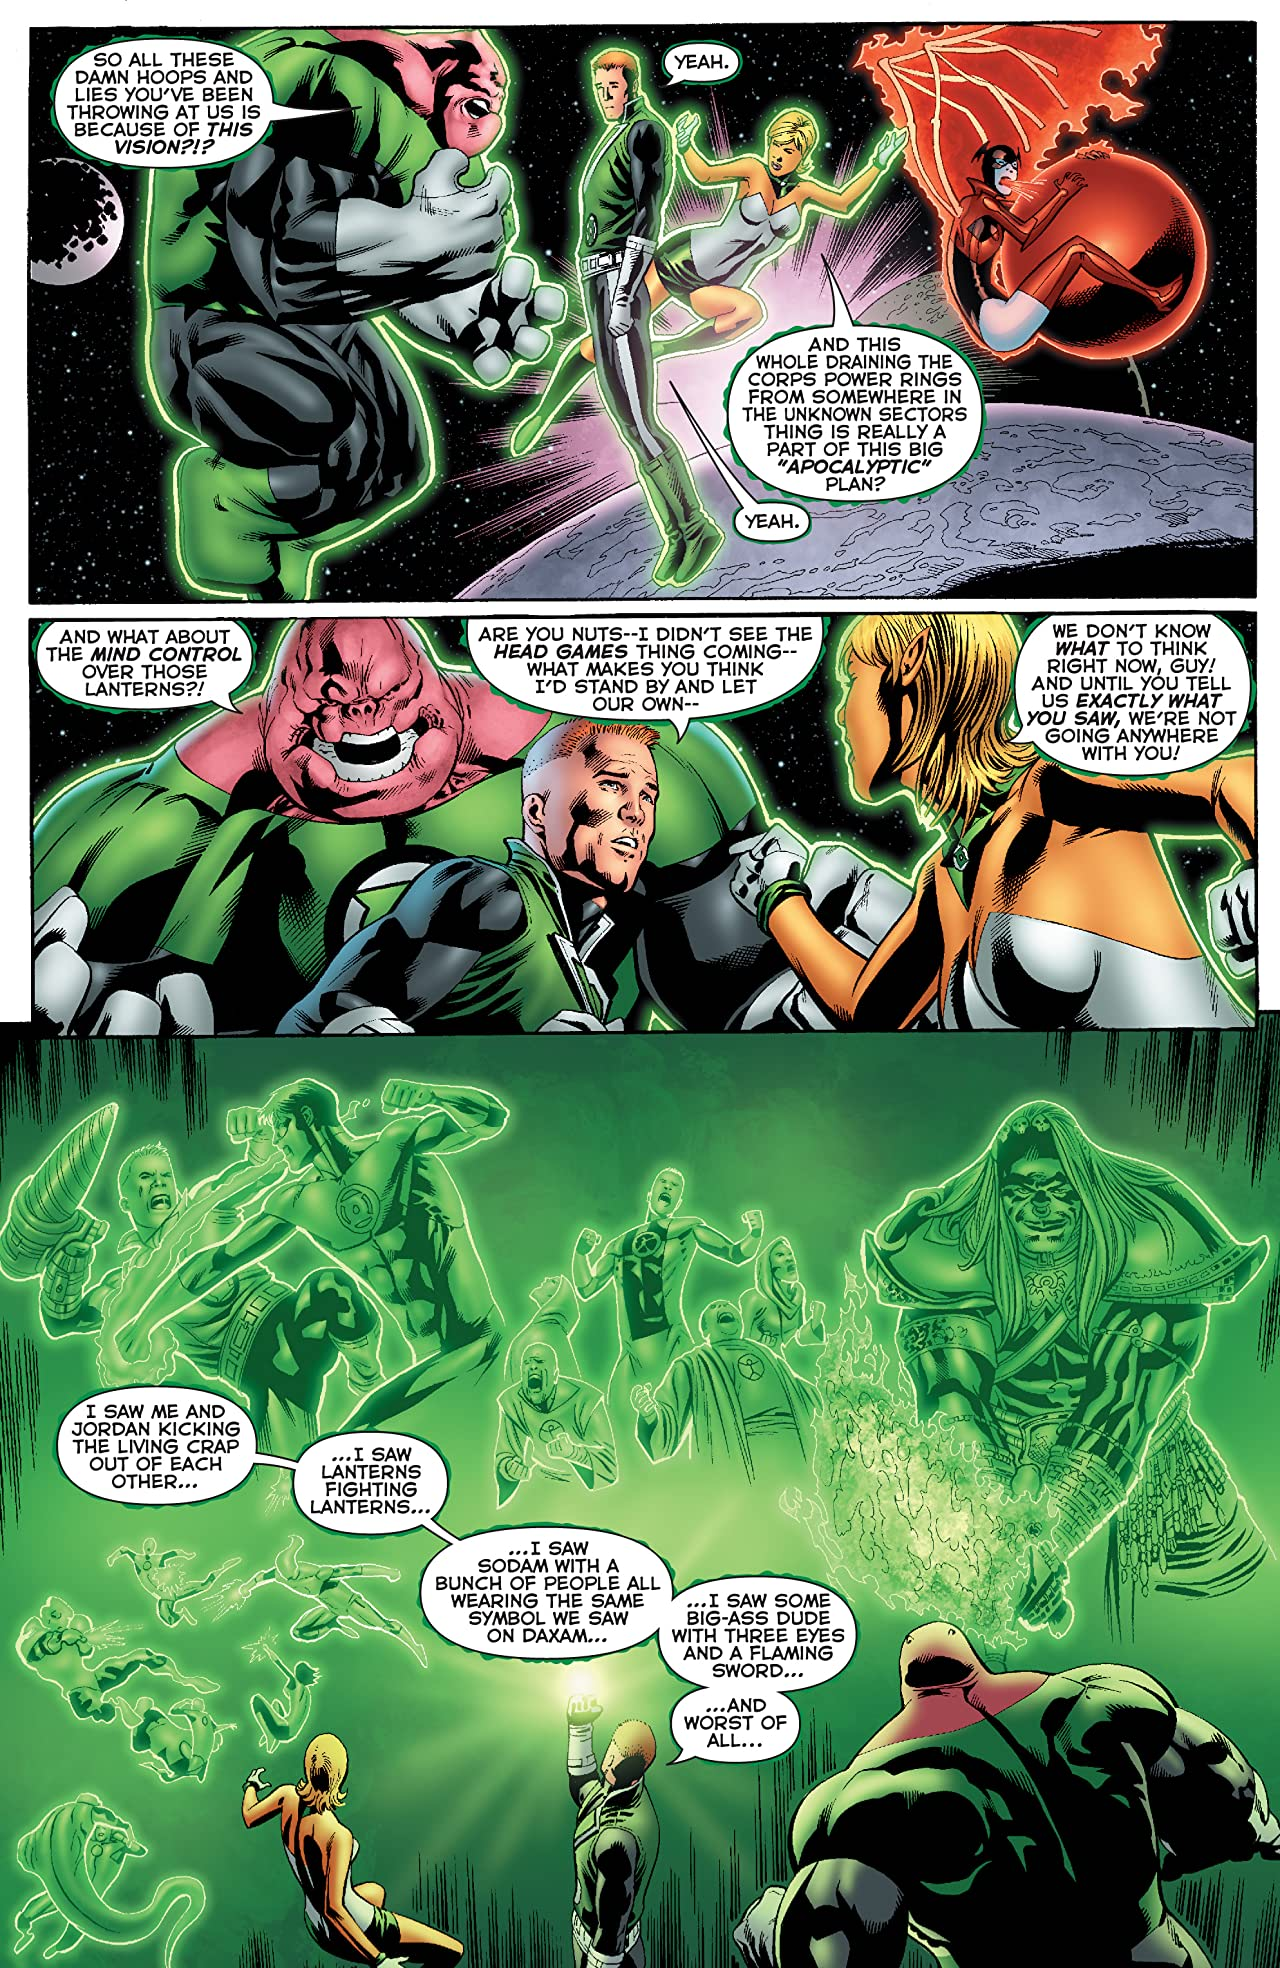 Green Lantern: Emerald Warriors #6